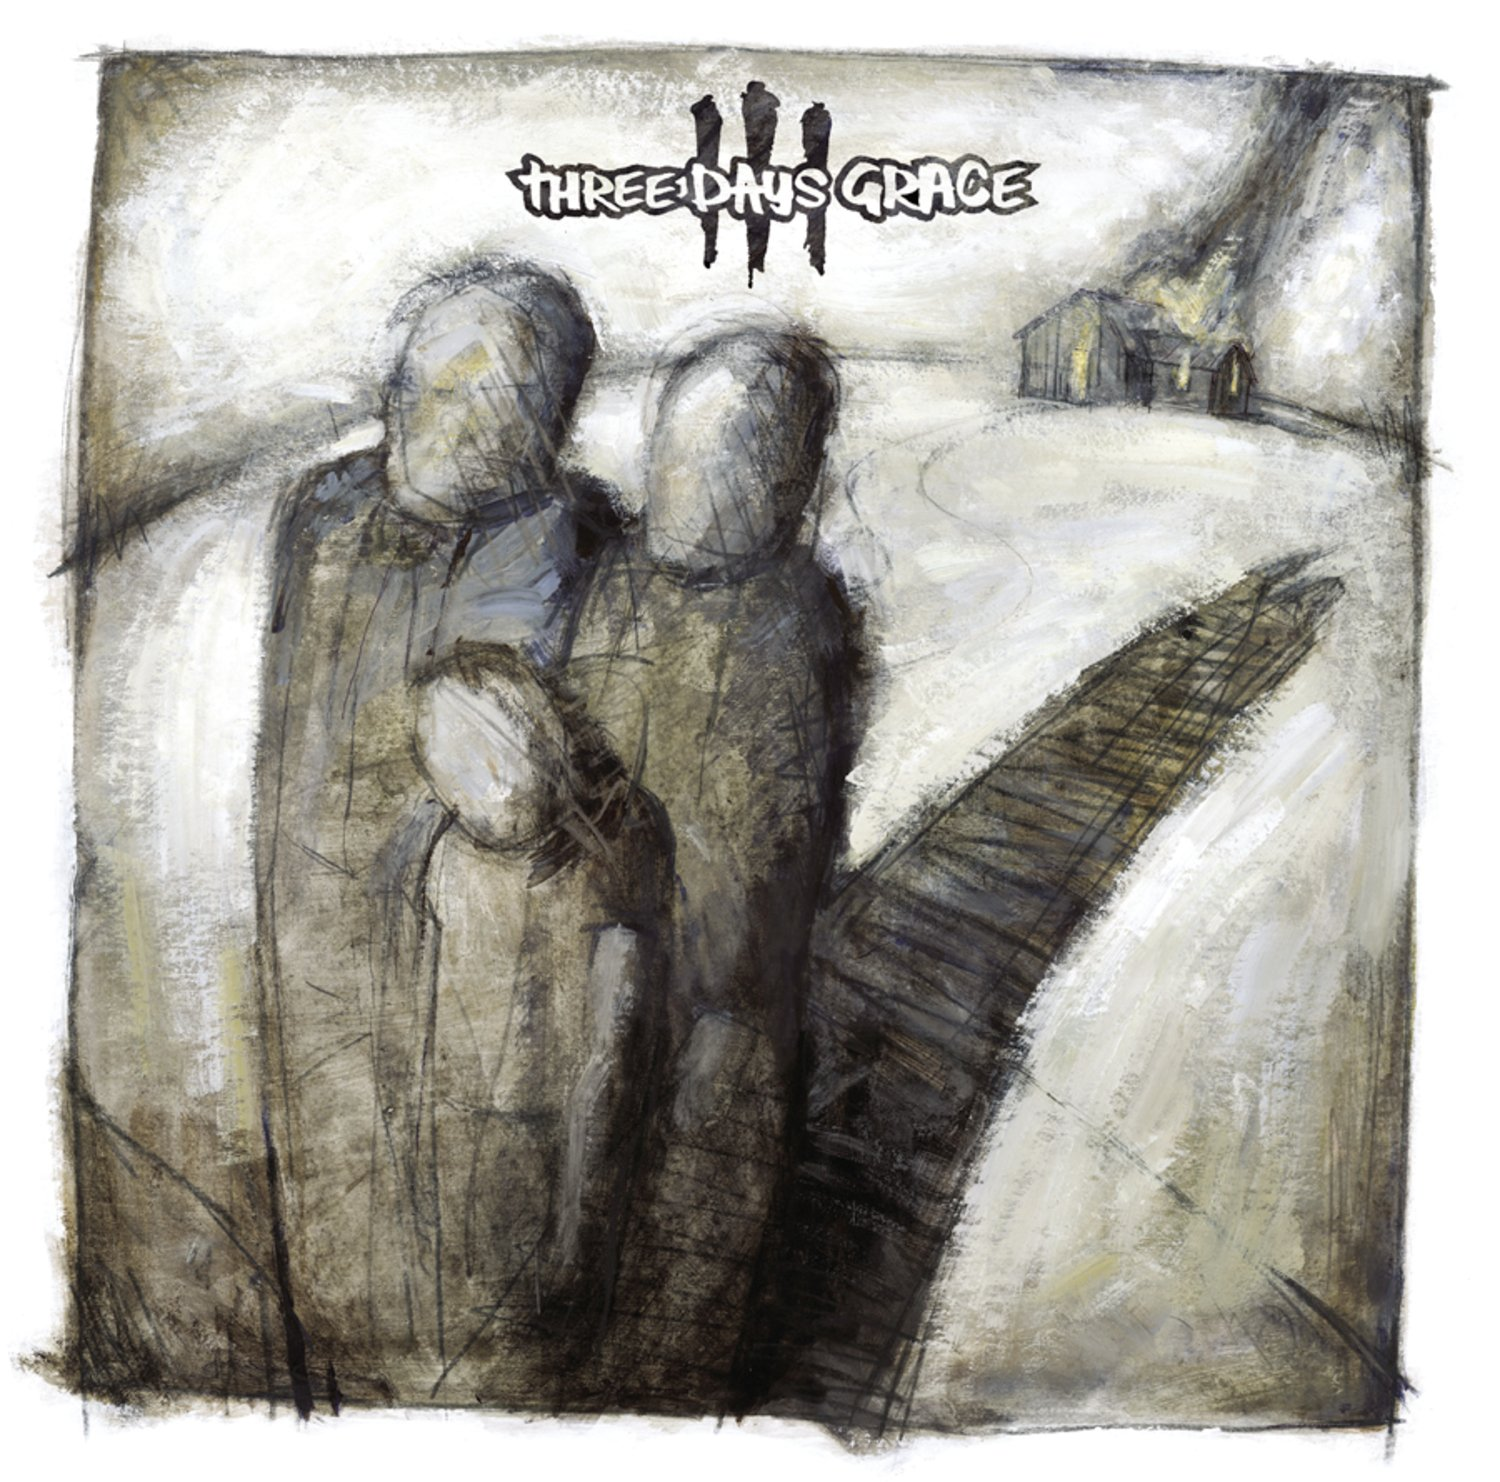 CD : Three Days Grace - Three Days Grace (CD)